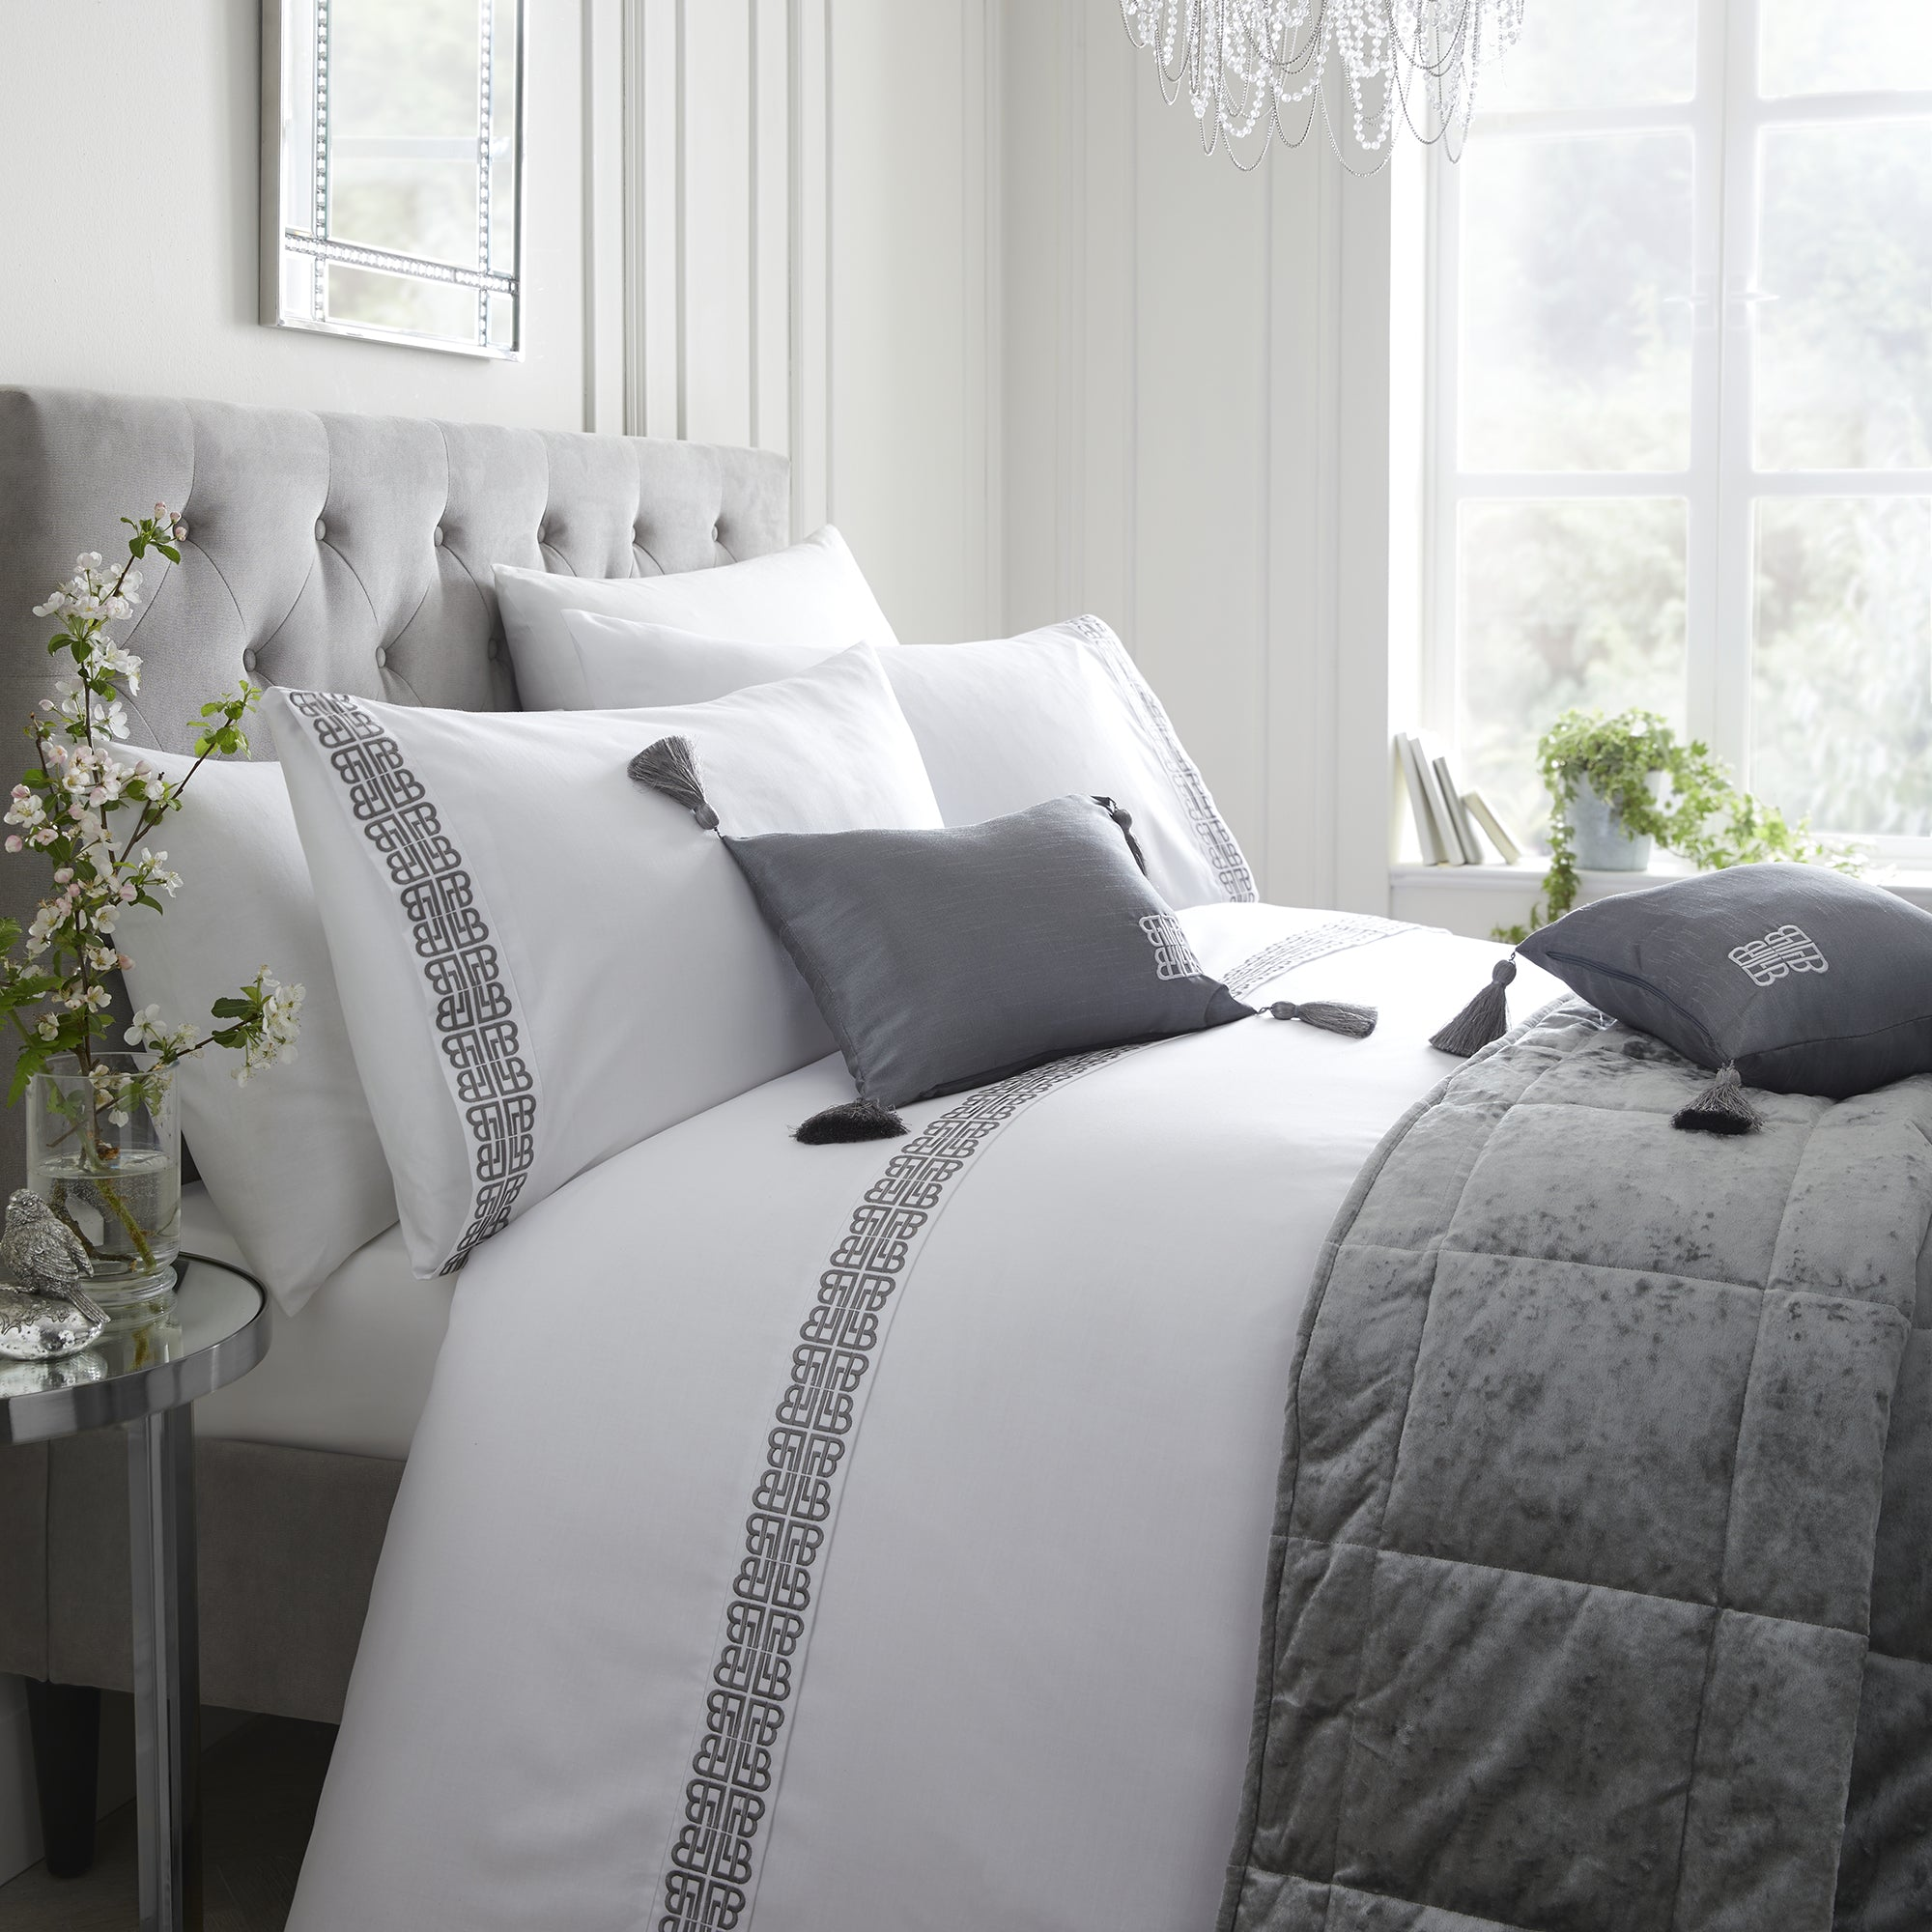 Monoglam - Embroidered Pleat Duvet Cover Set by Laurence Llewelyn-Bowen